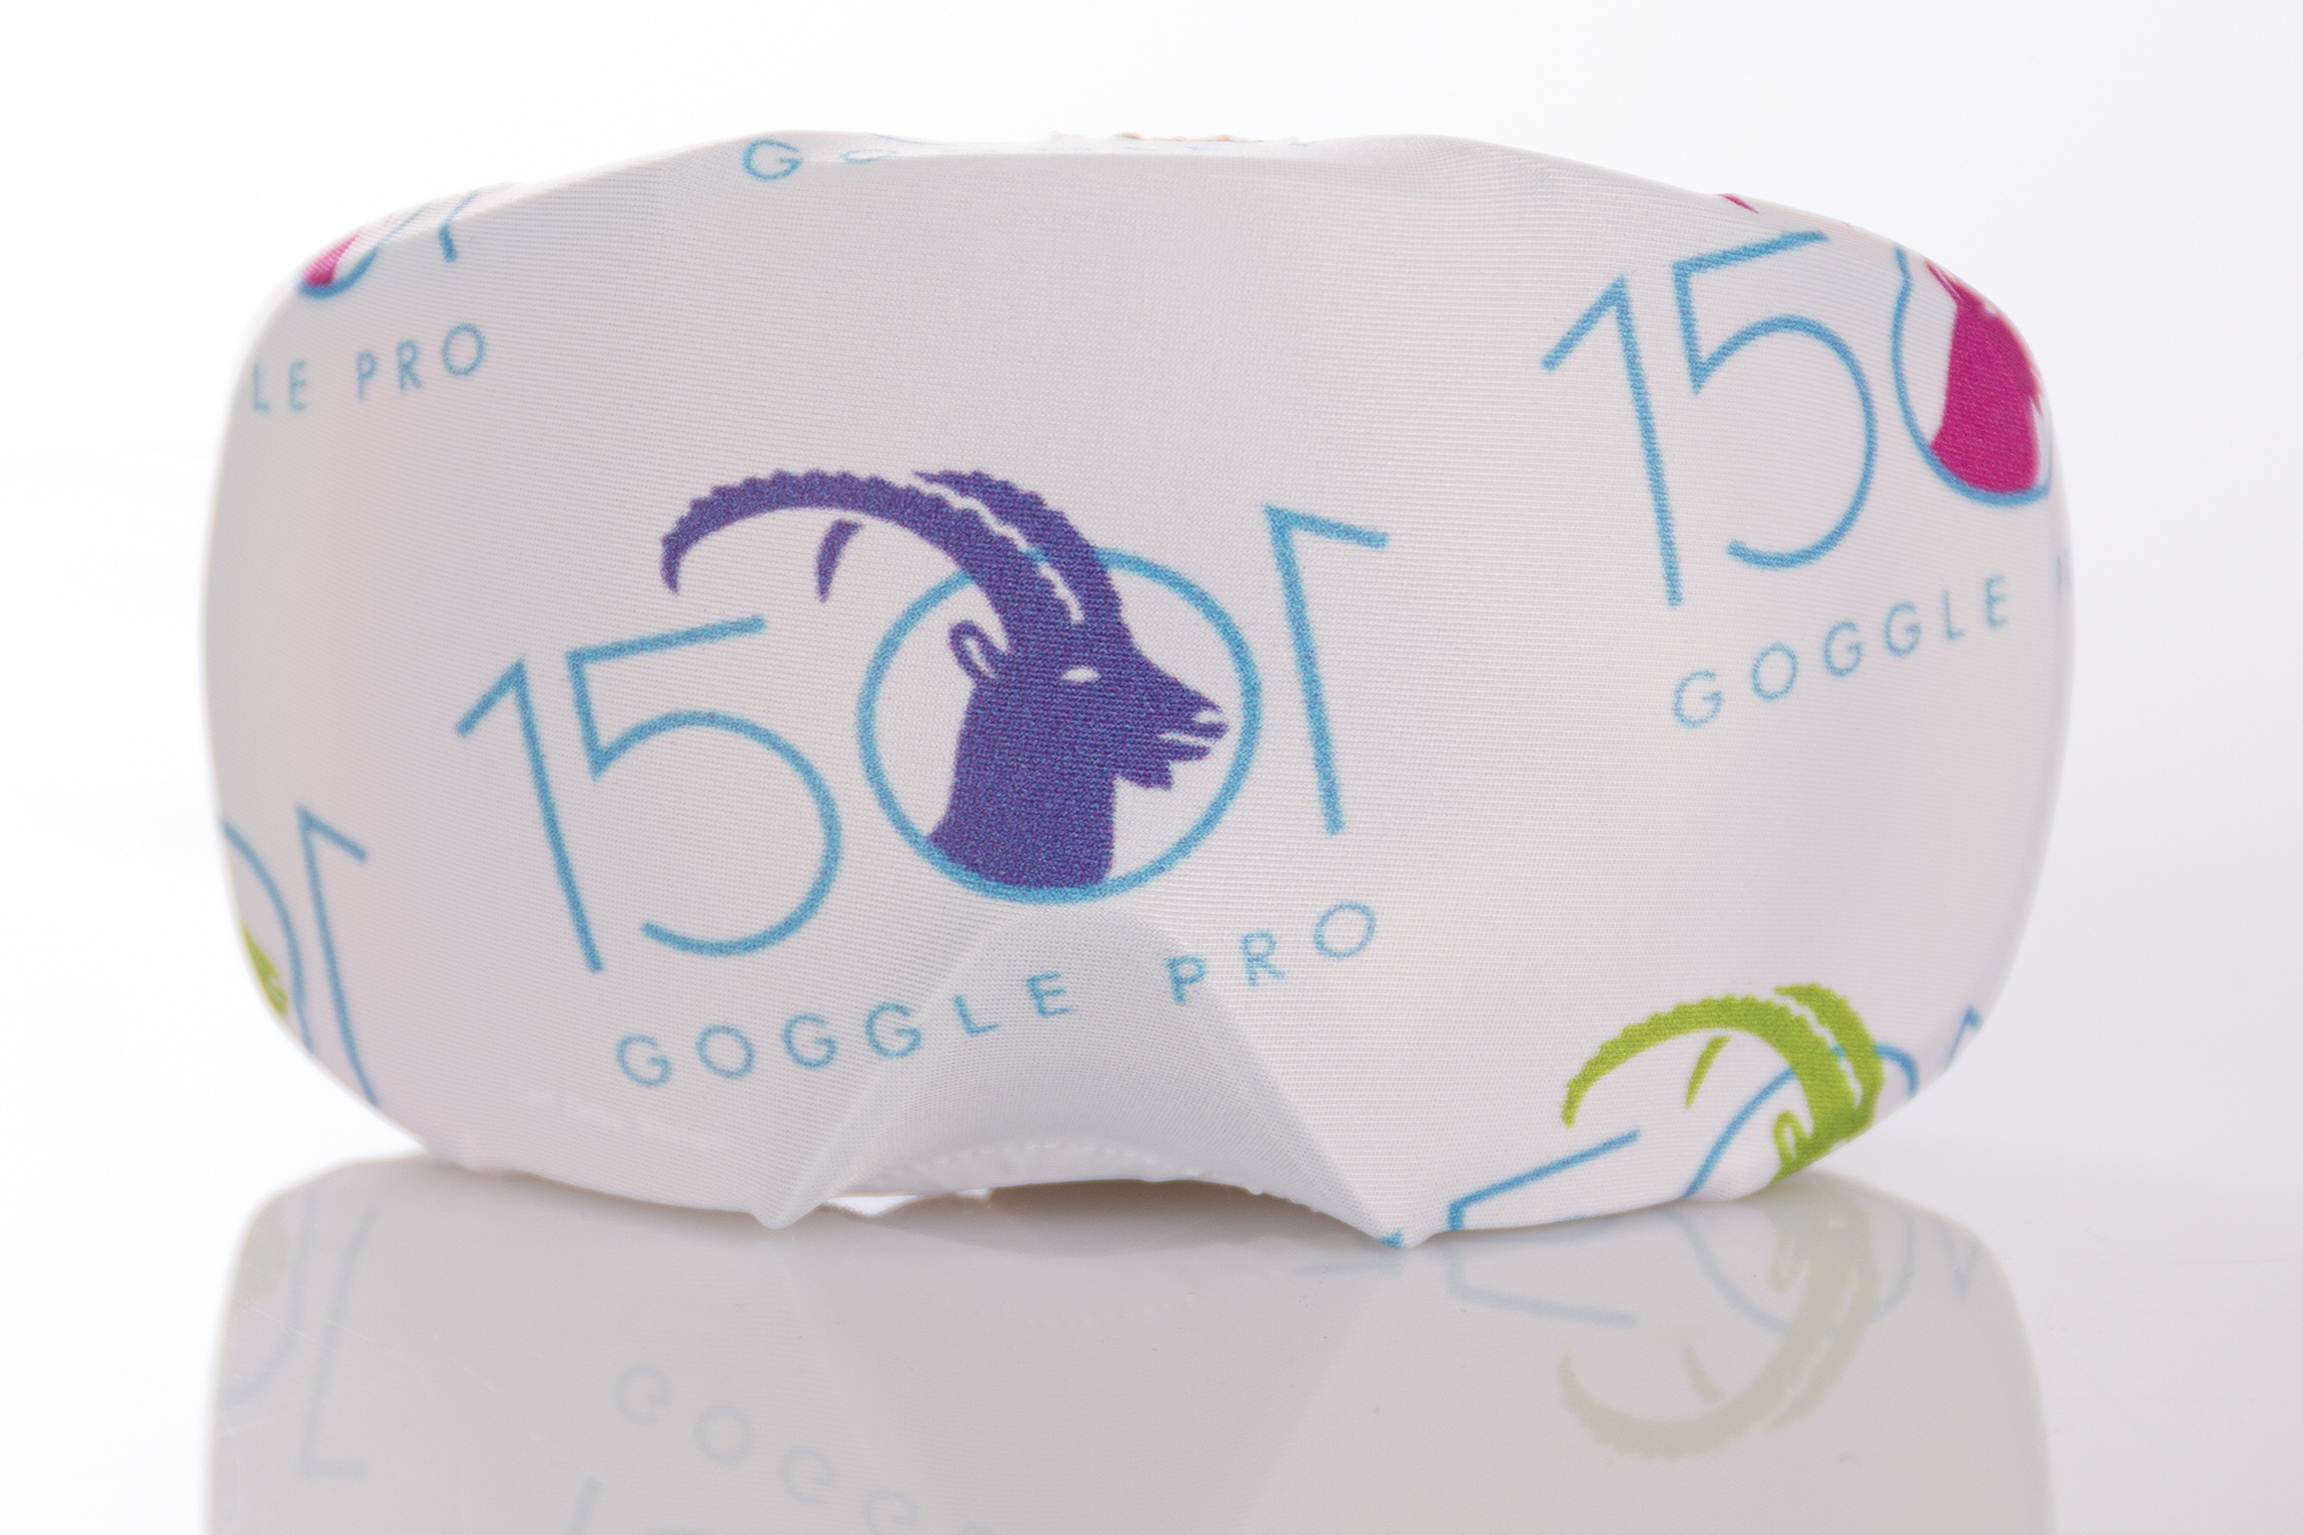 Goggle Pro Fresh and Cheerful